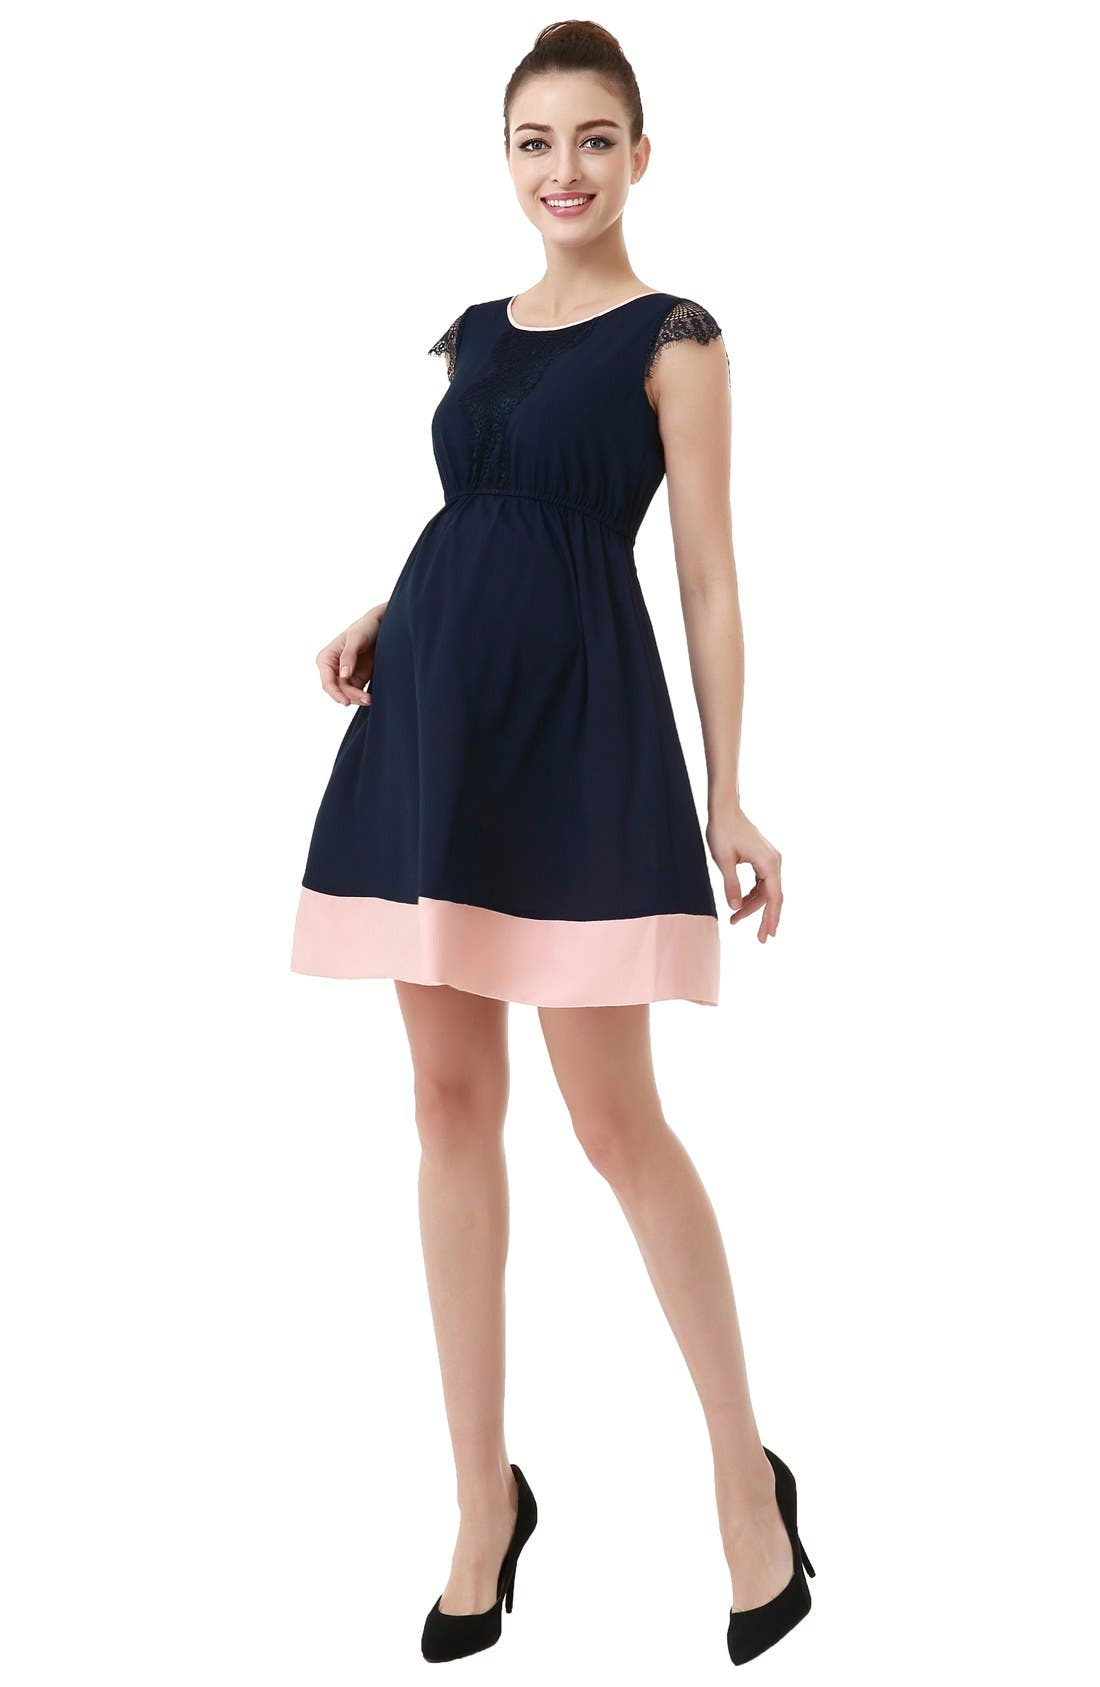 Nell Fit & Flare Maternity Dress,                             Alternate thumbnail 3, color,                             Navy